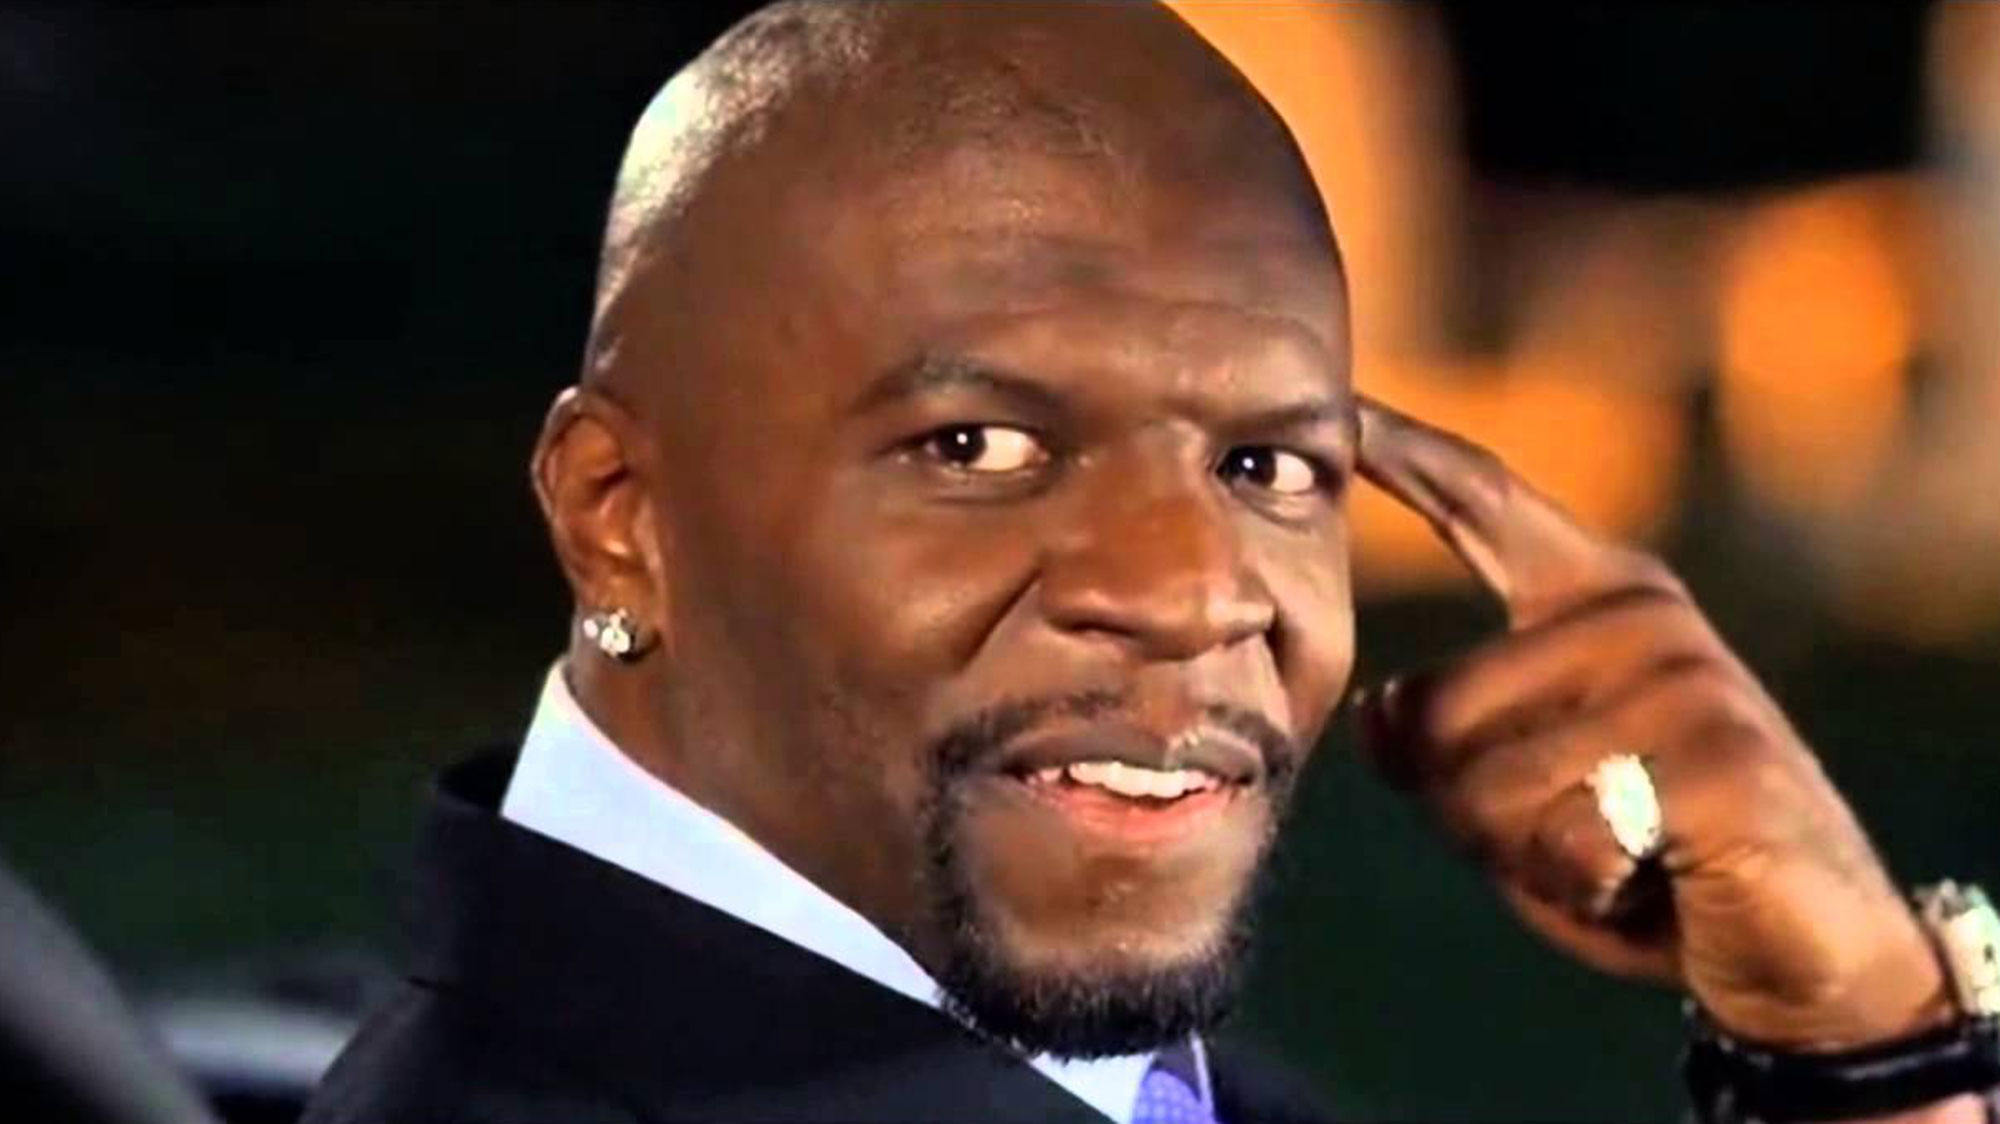 Terry Crews Is Still Holding Out Hope for 'White Chicks 2': 'That Movie's Going to Happen' - Terry Crews in 'White Chicks'